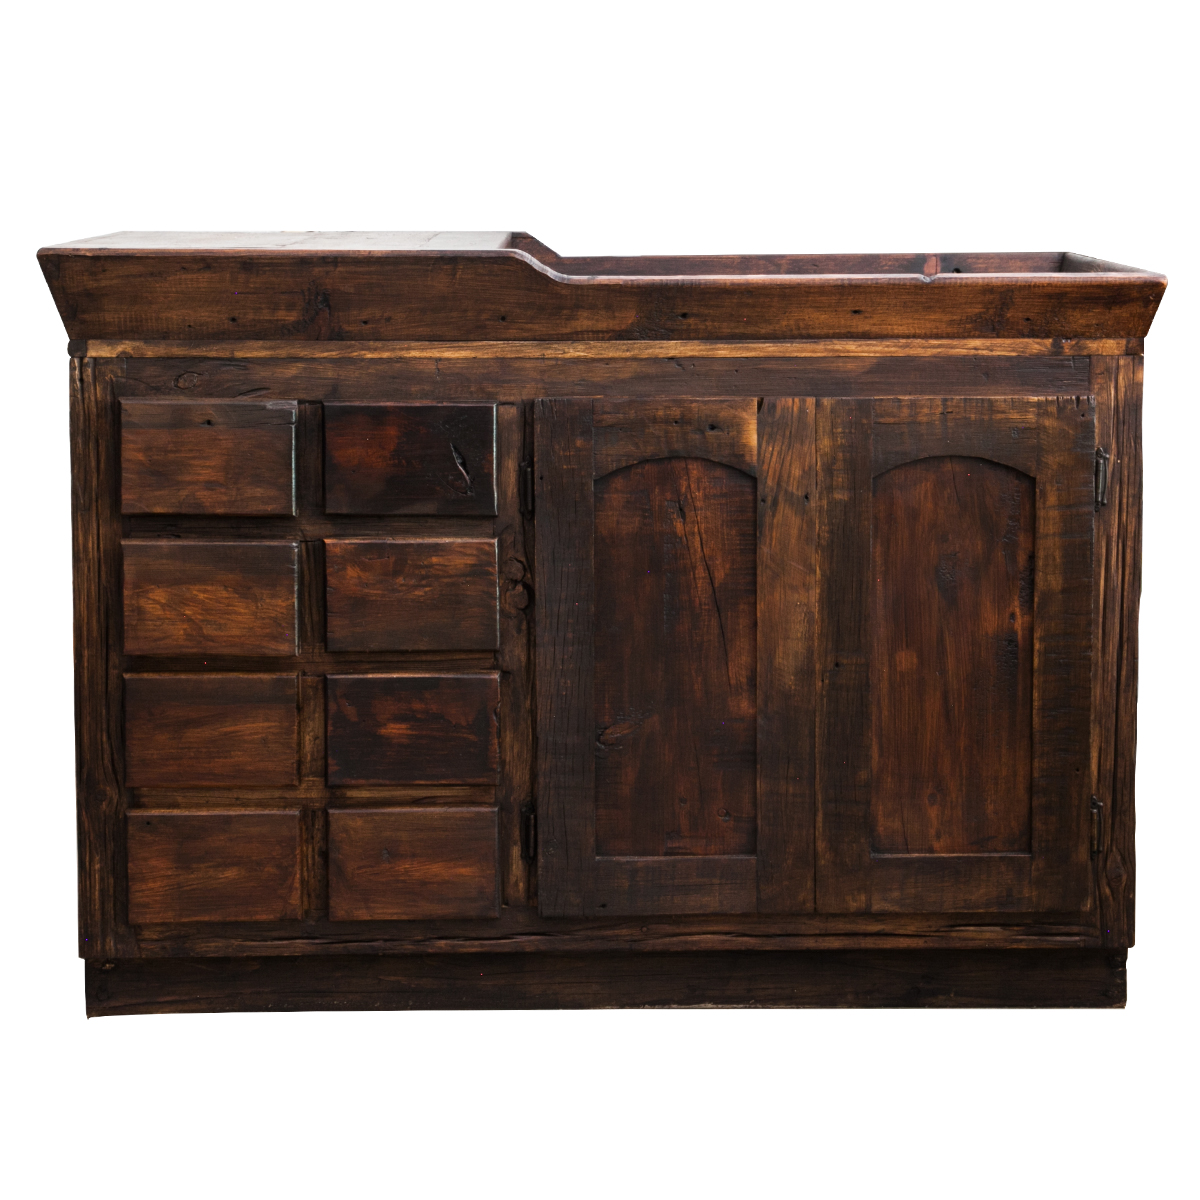 Custom Bathroom Vanity alden reclaimed bathroom vanity for sale - perfect fit for any